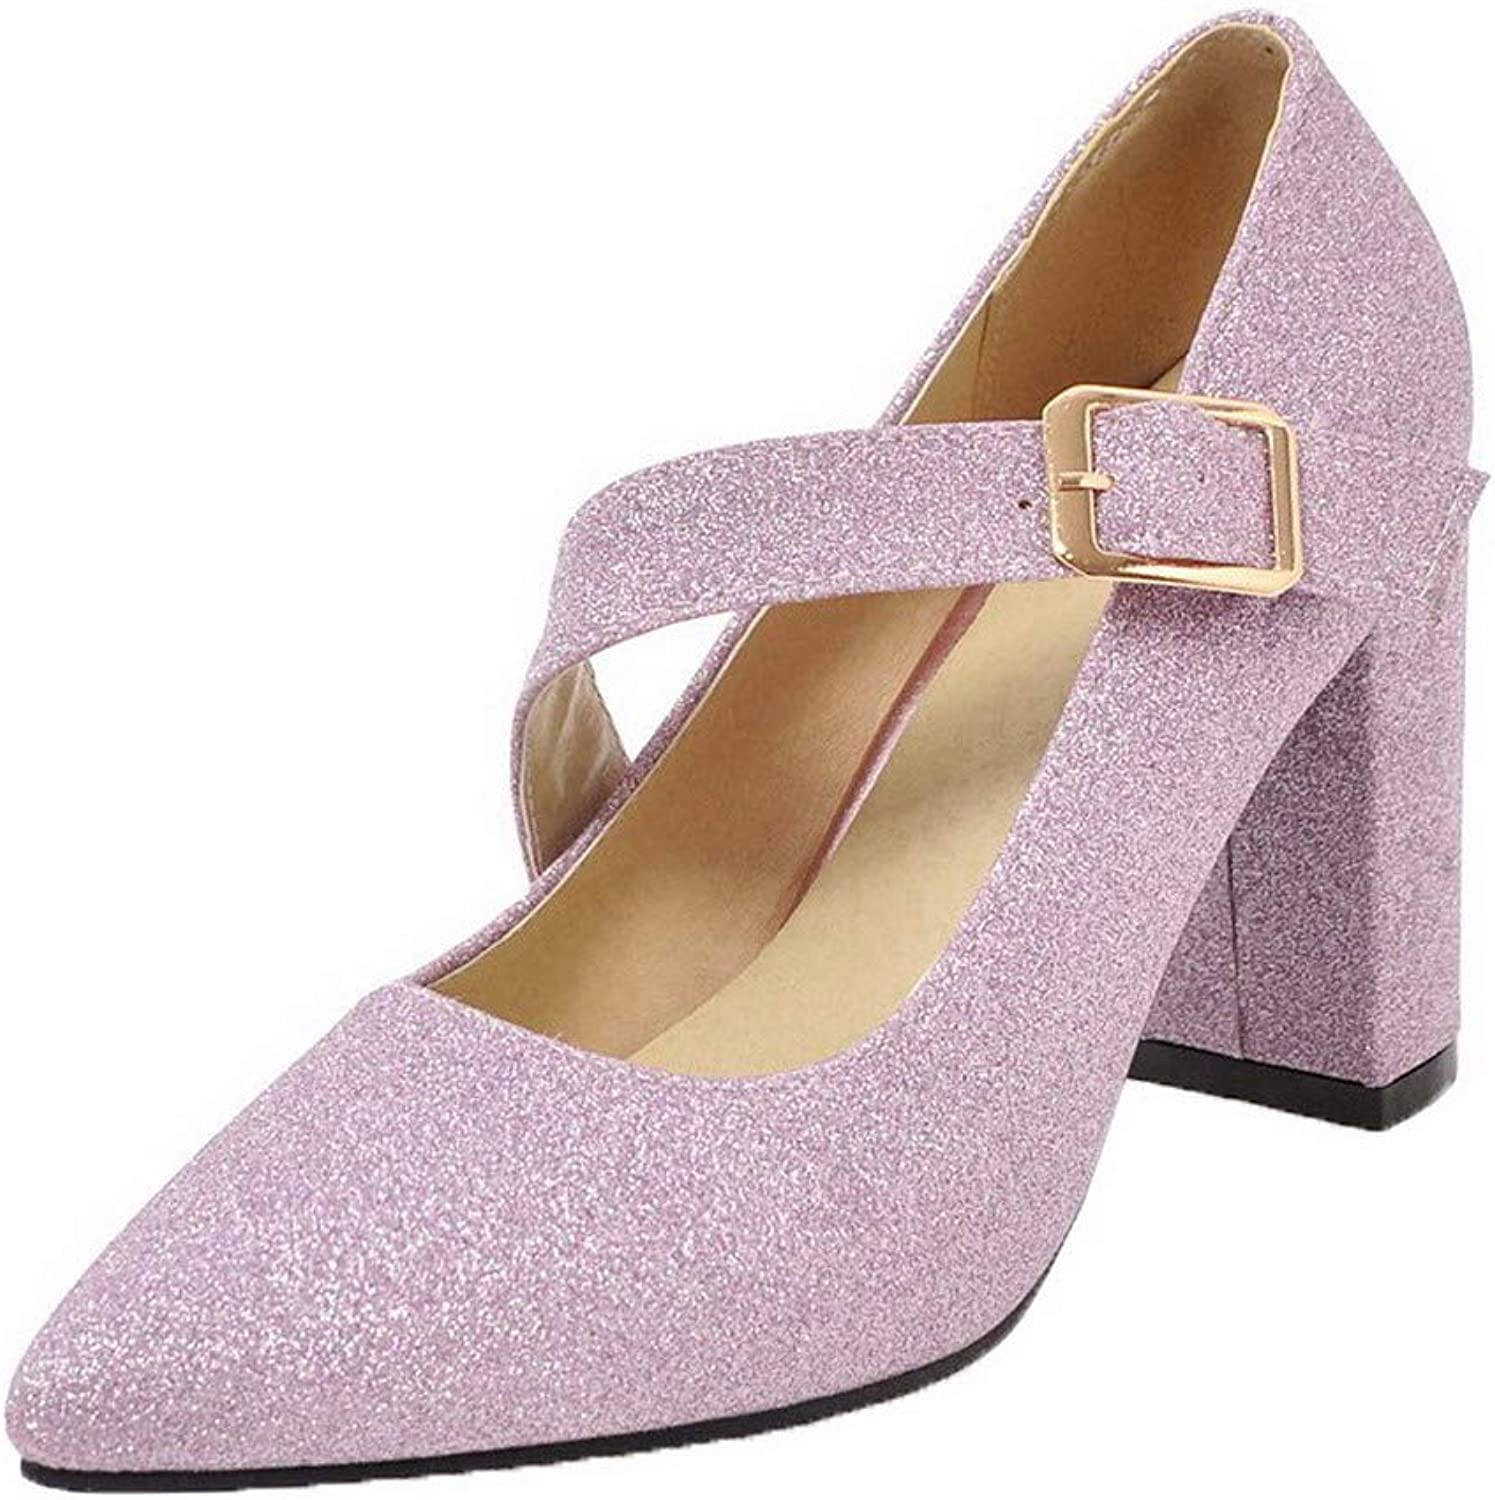 WeenFashion Women's High-Heels Sequins Solid Buckle Pumps-shoes, AMGDX006435